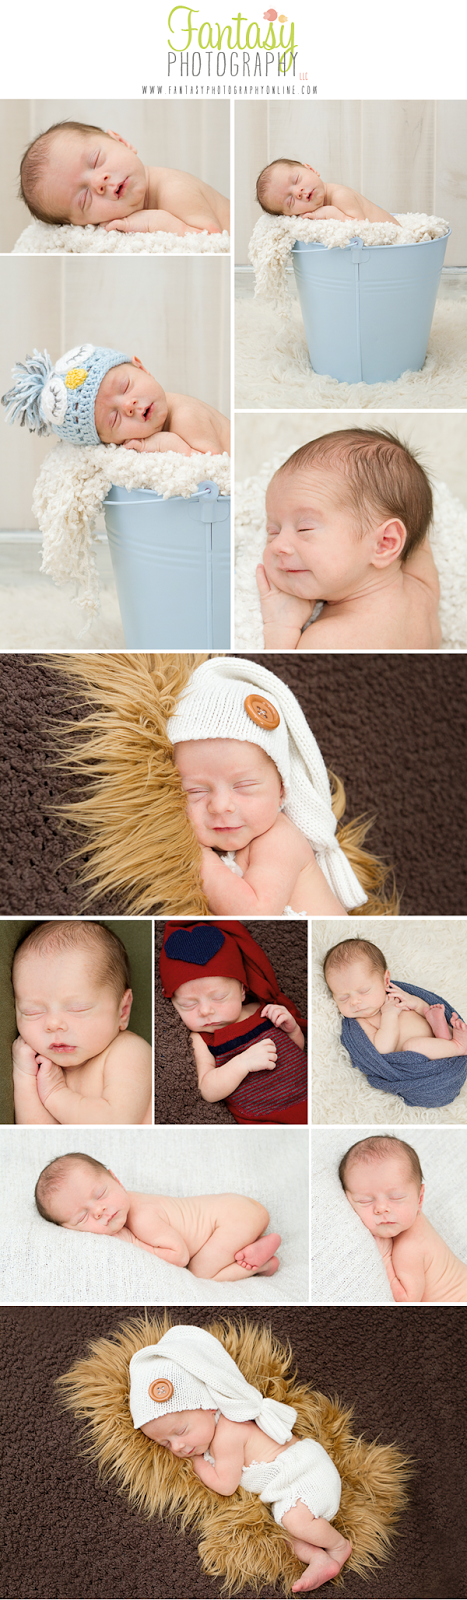 newborn photographers winston salem | greensboro high point